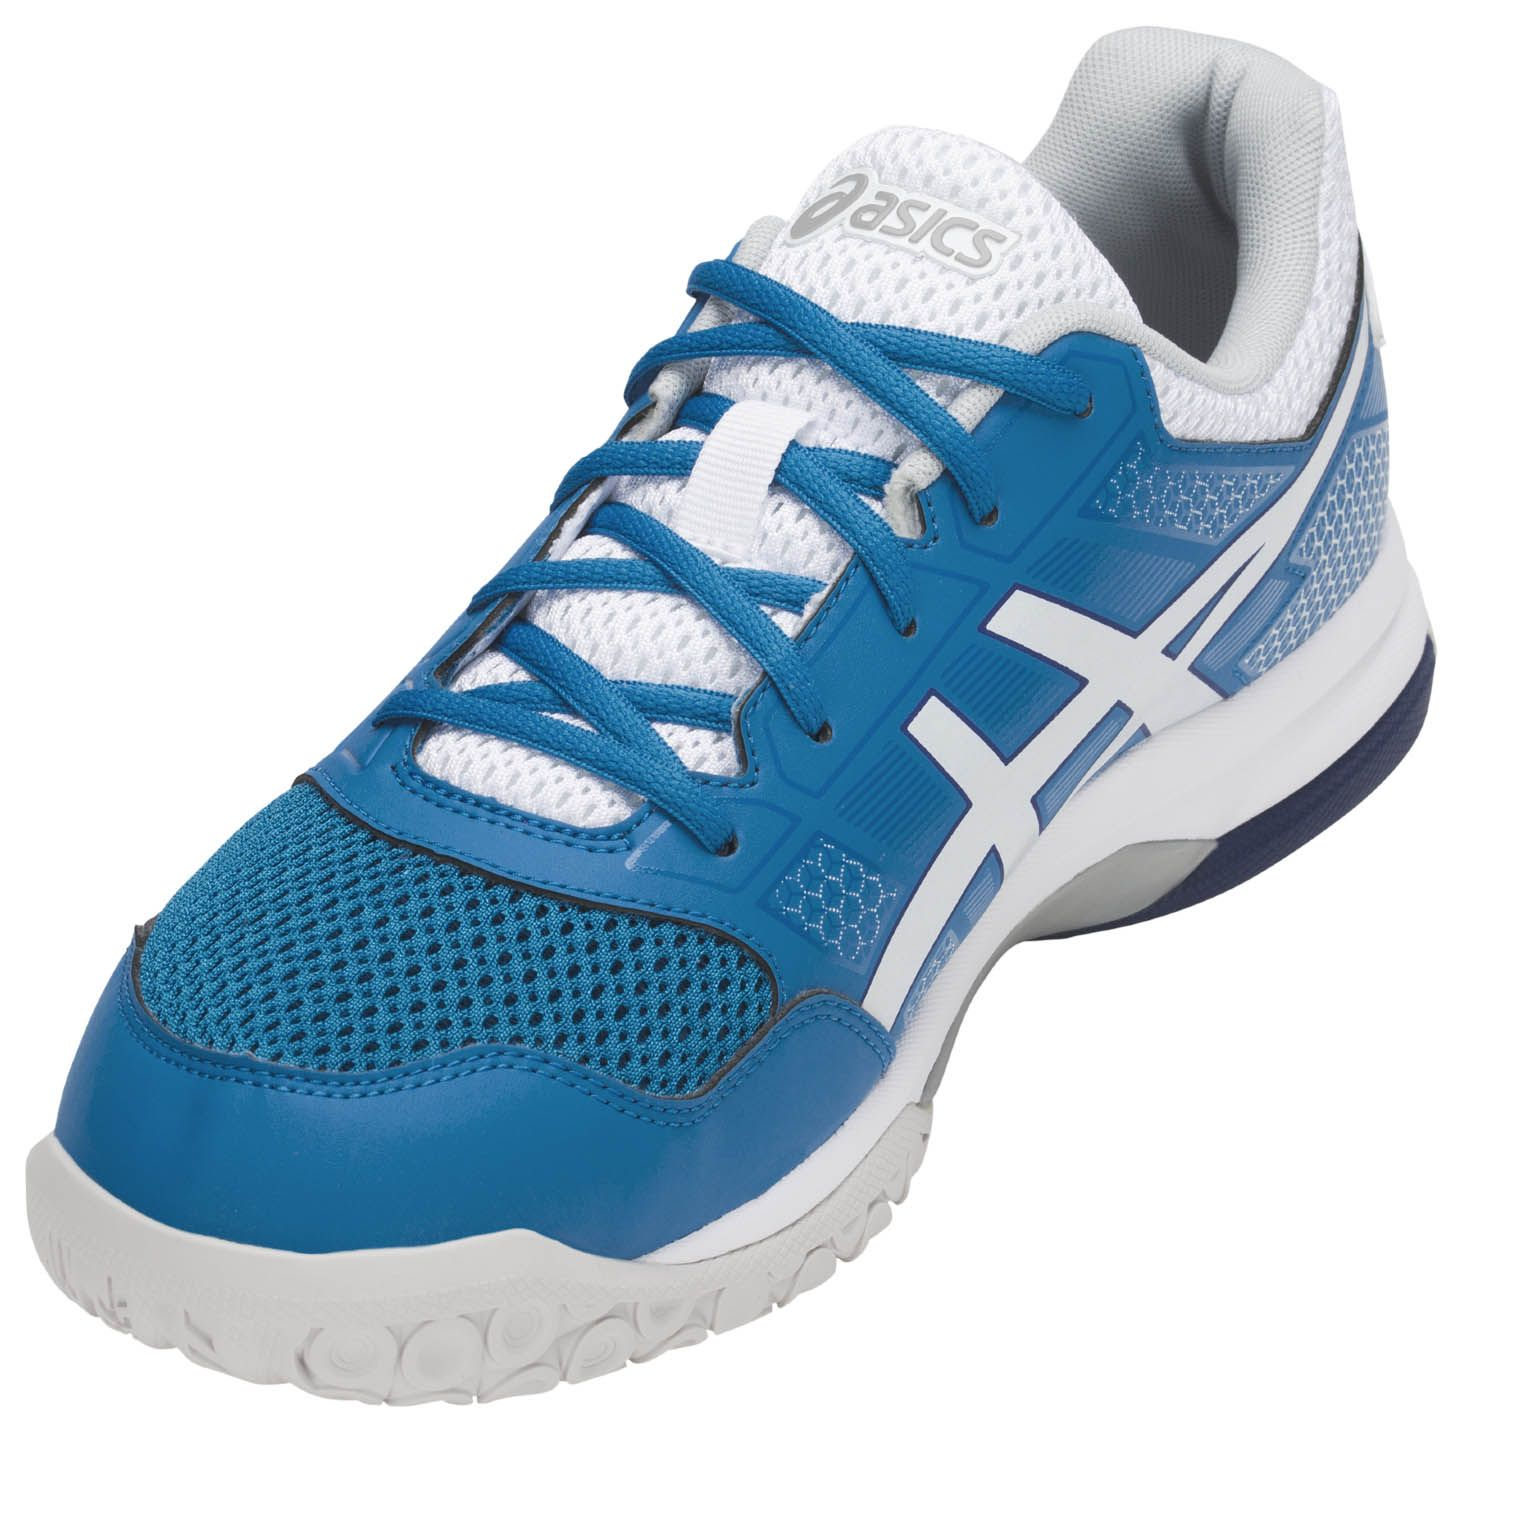 Asics Mens Golf Shoes Sale